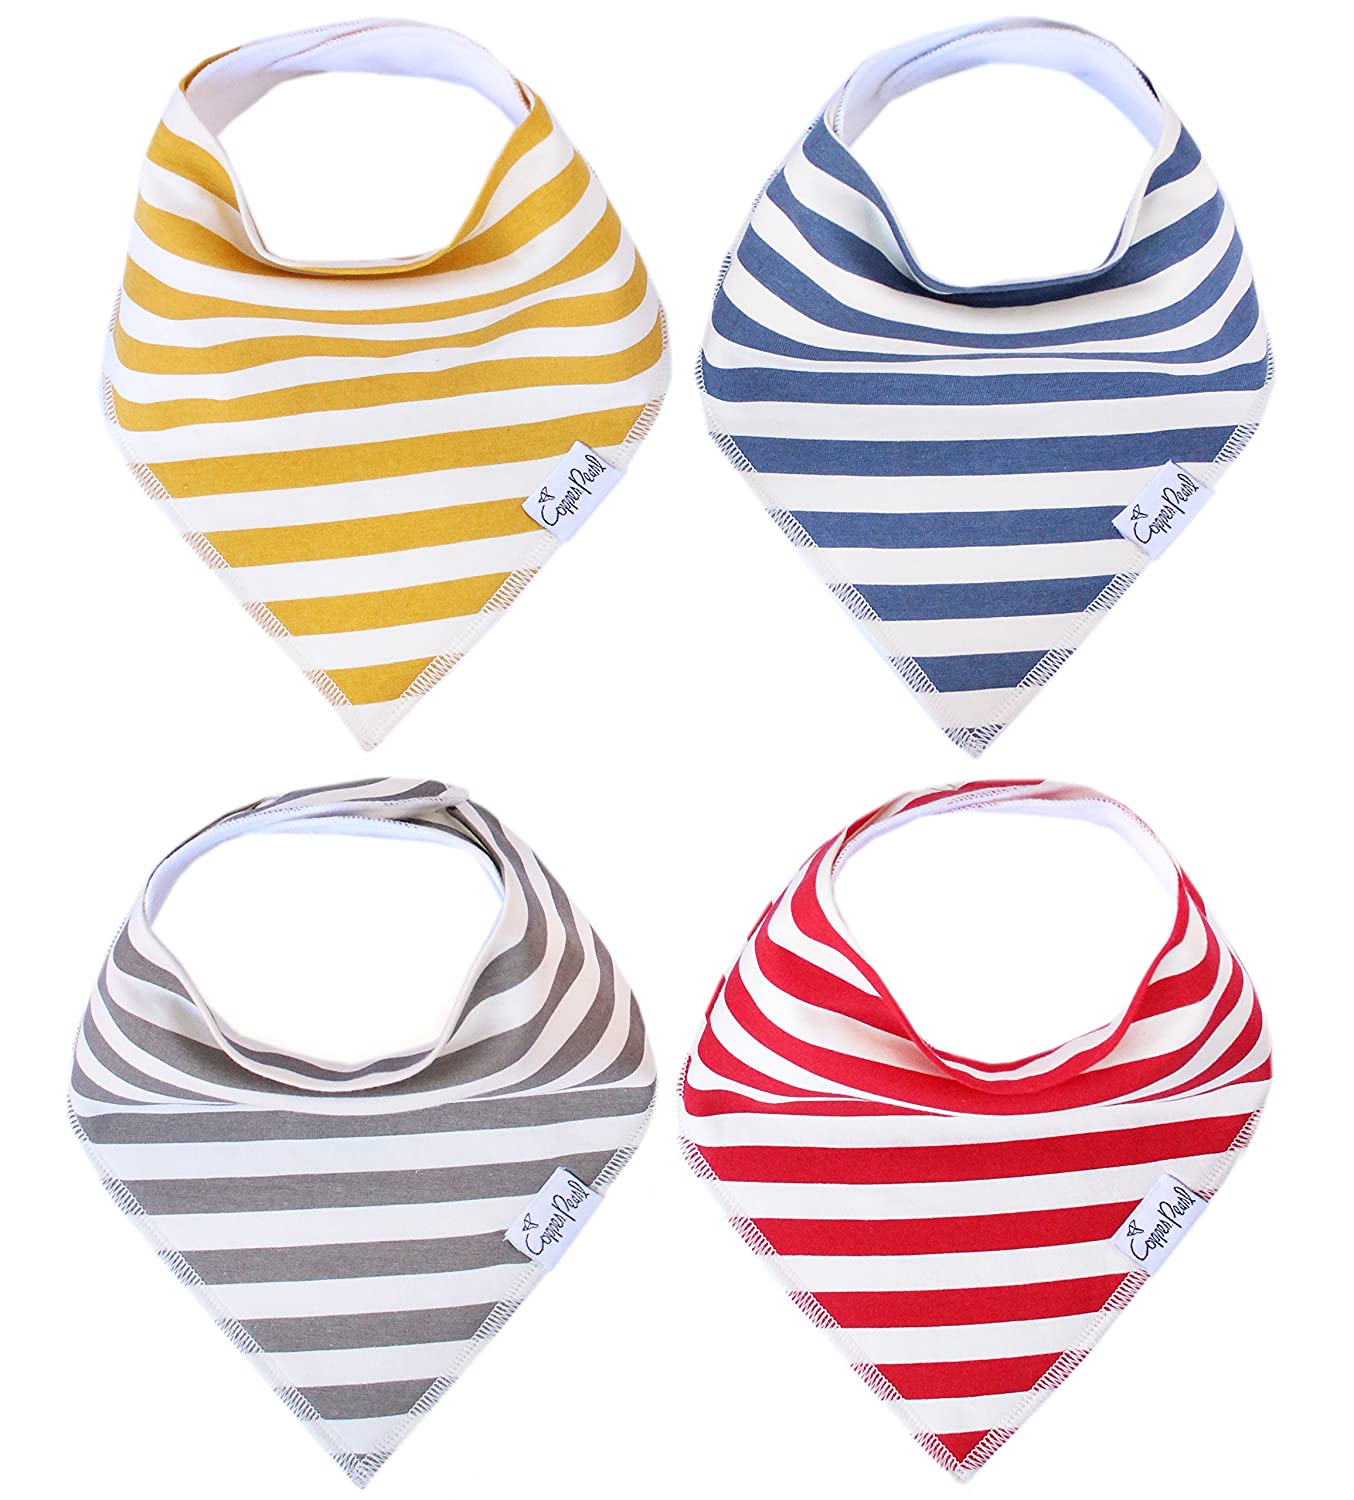 Baby Max 88% OFF Bandana Drool Bibs for Drooling Se Teething Ranking TOP6 4 Pack and Gift